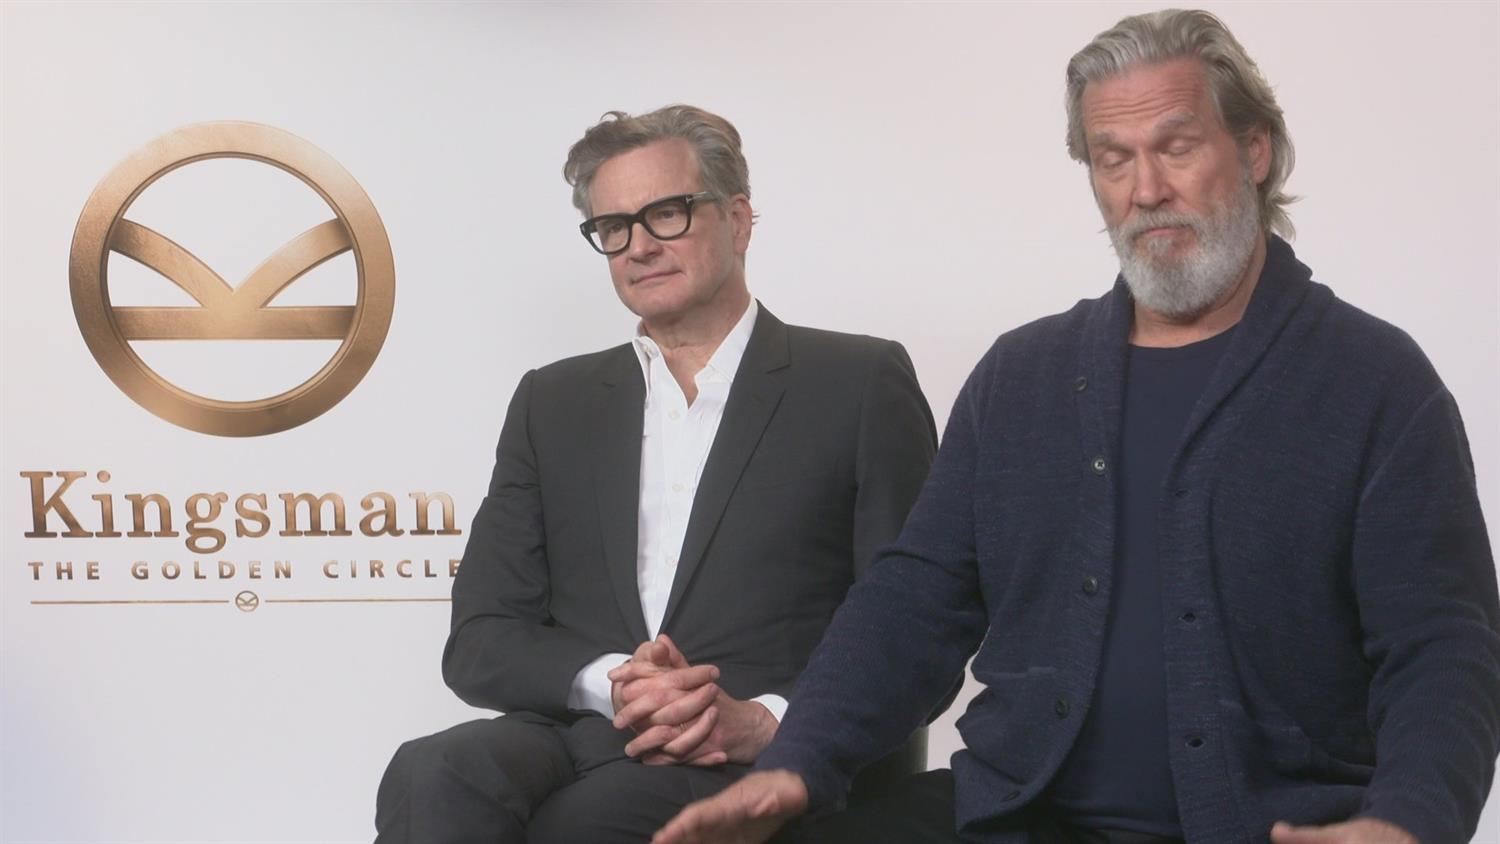 Kingsman: The Golden Circle's Jeff Bridges and Colin Firth on Hollywood Back in the Day